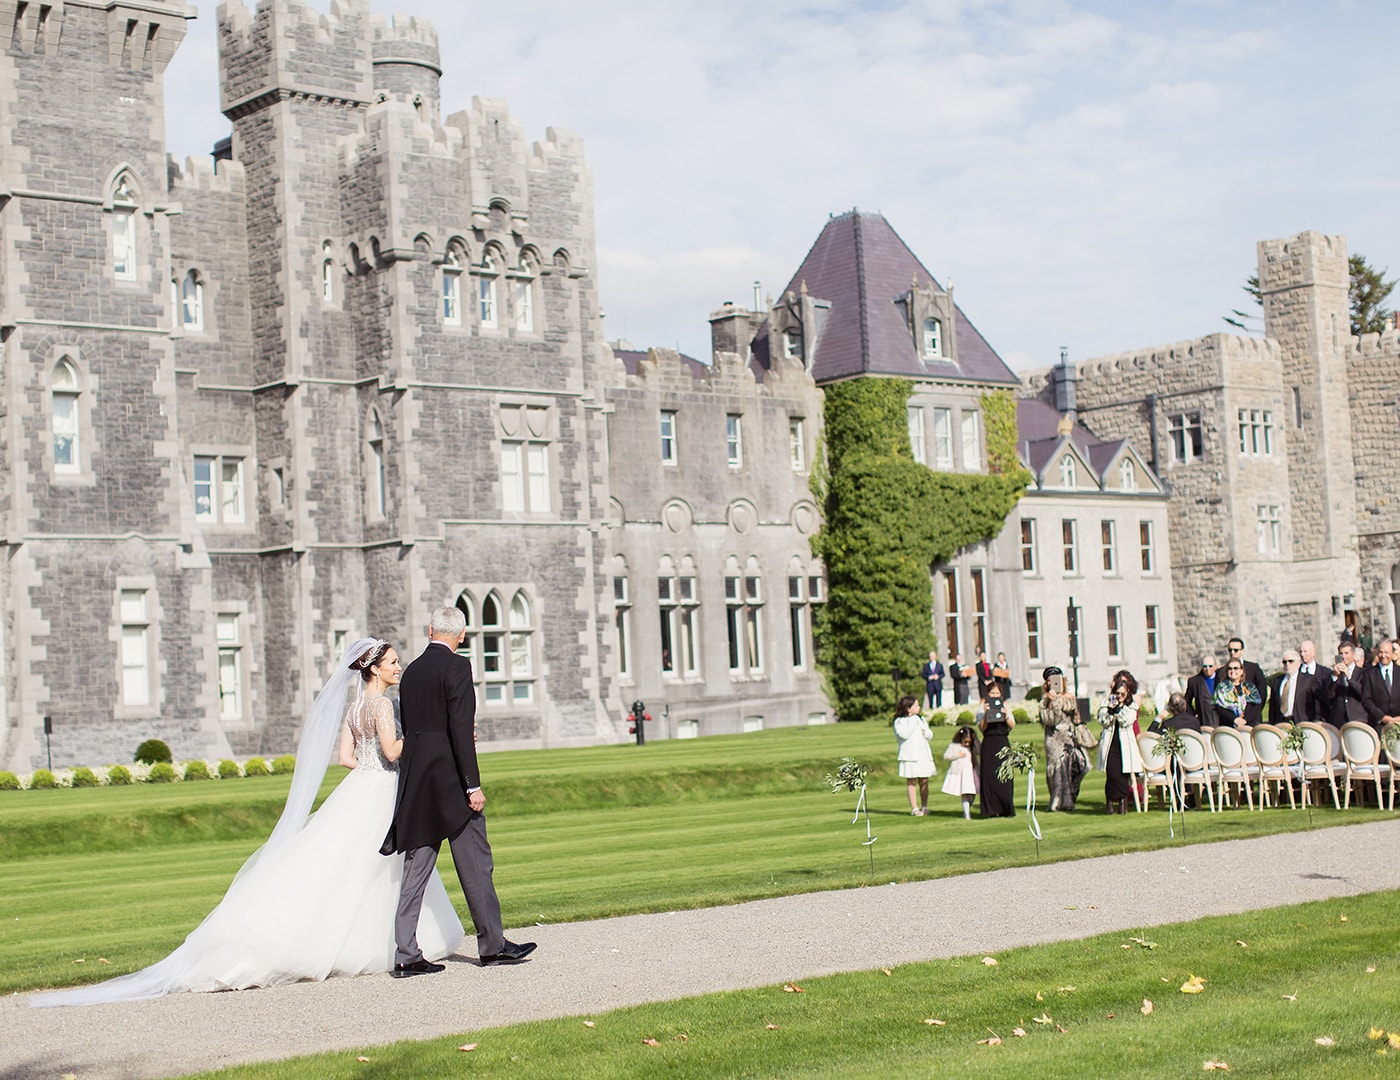 Ashford Castle Wedding, wedding ceremony, Destination wedding planning, Olivia Buckley International, Destination Wedding, Event Planner in Ireland